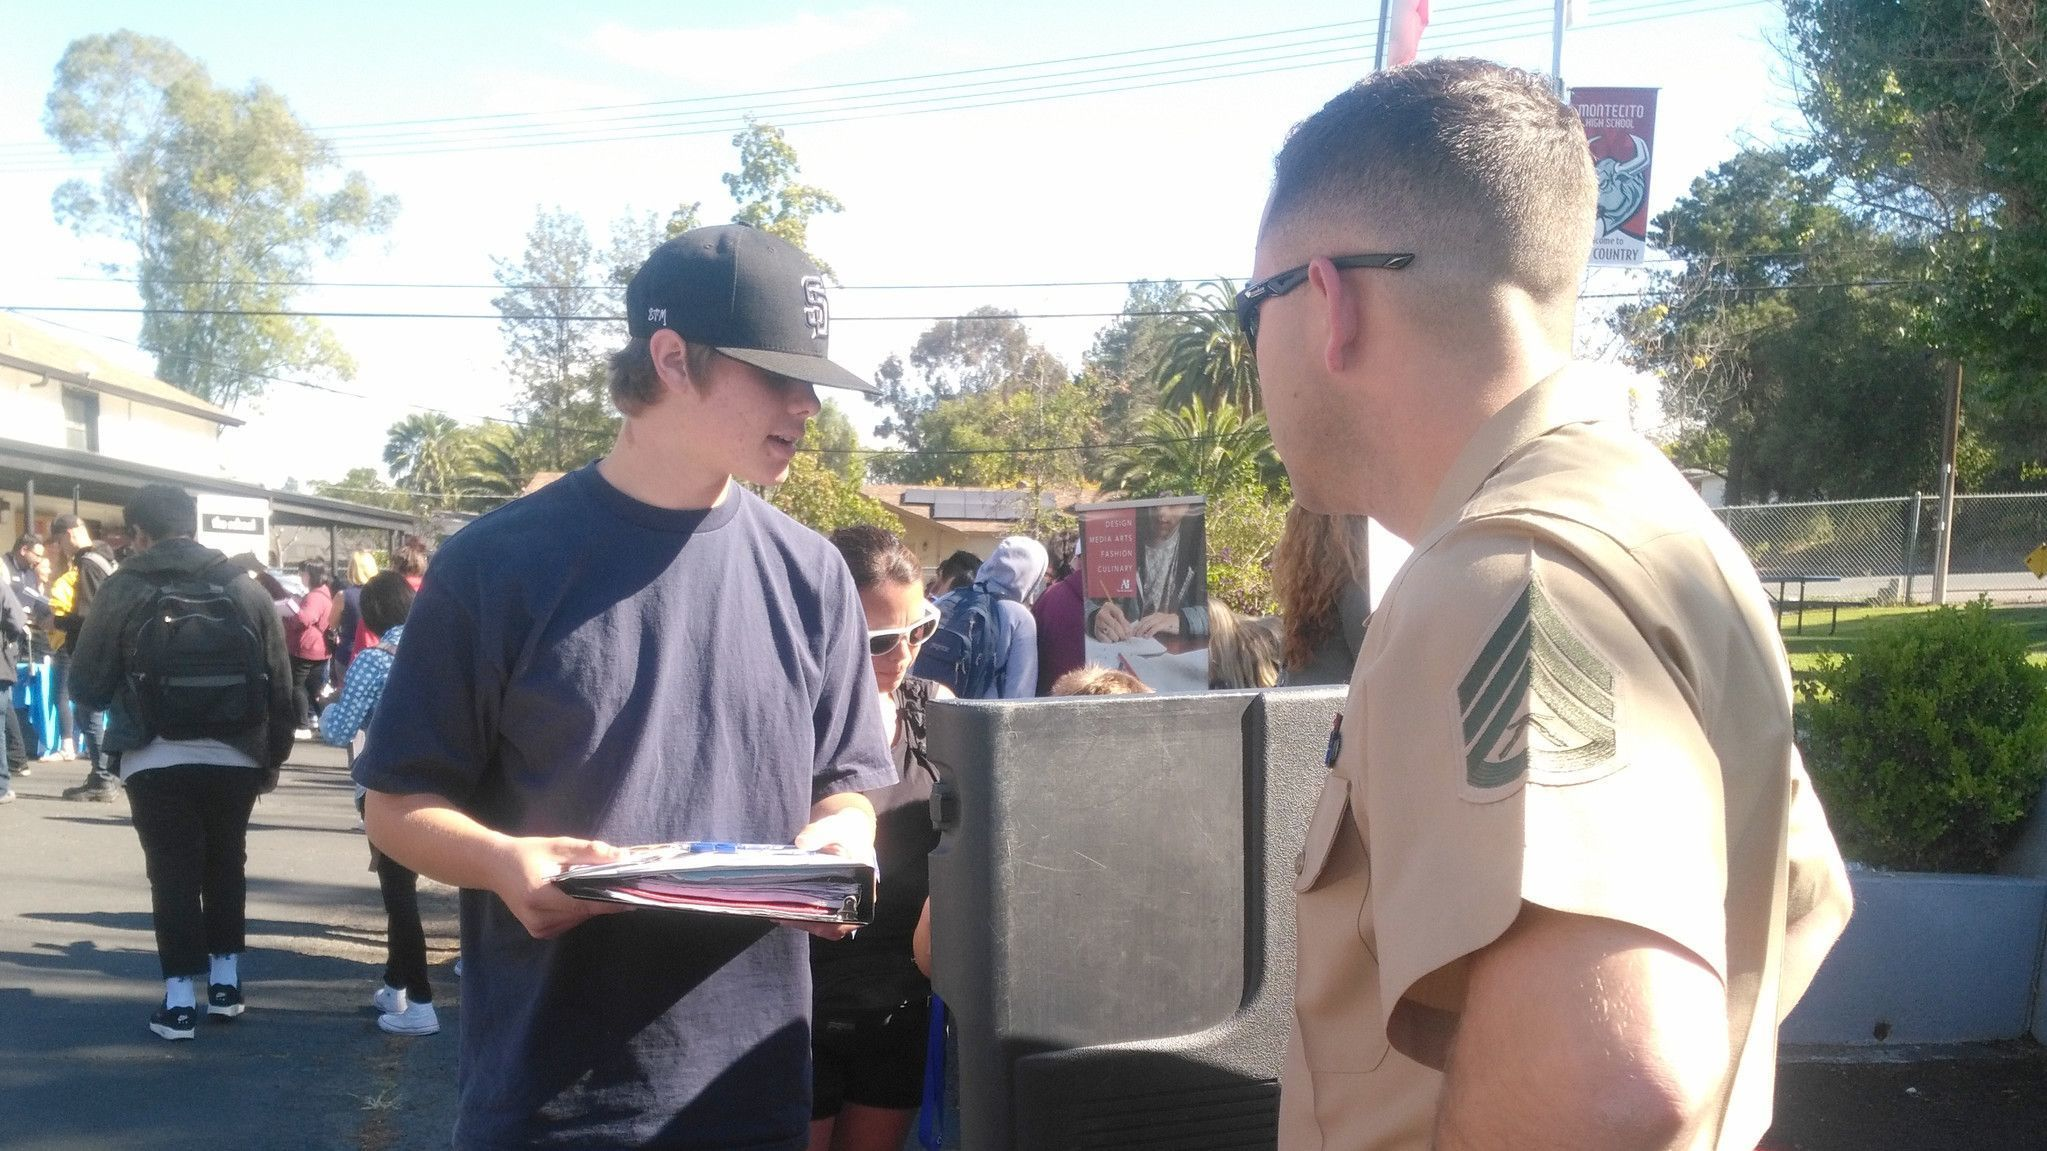 Montecito High senior Chase Blessum discusses plans to join the Marine Corps after graduation with Staff Sgt. Garrett Osborn.